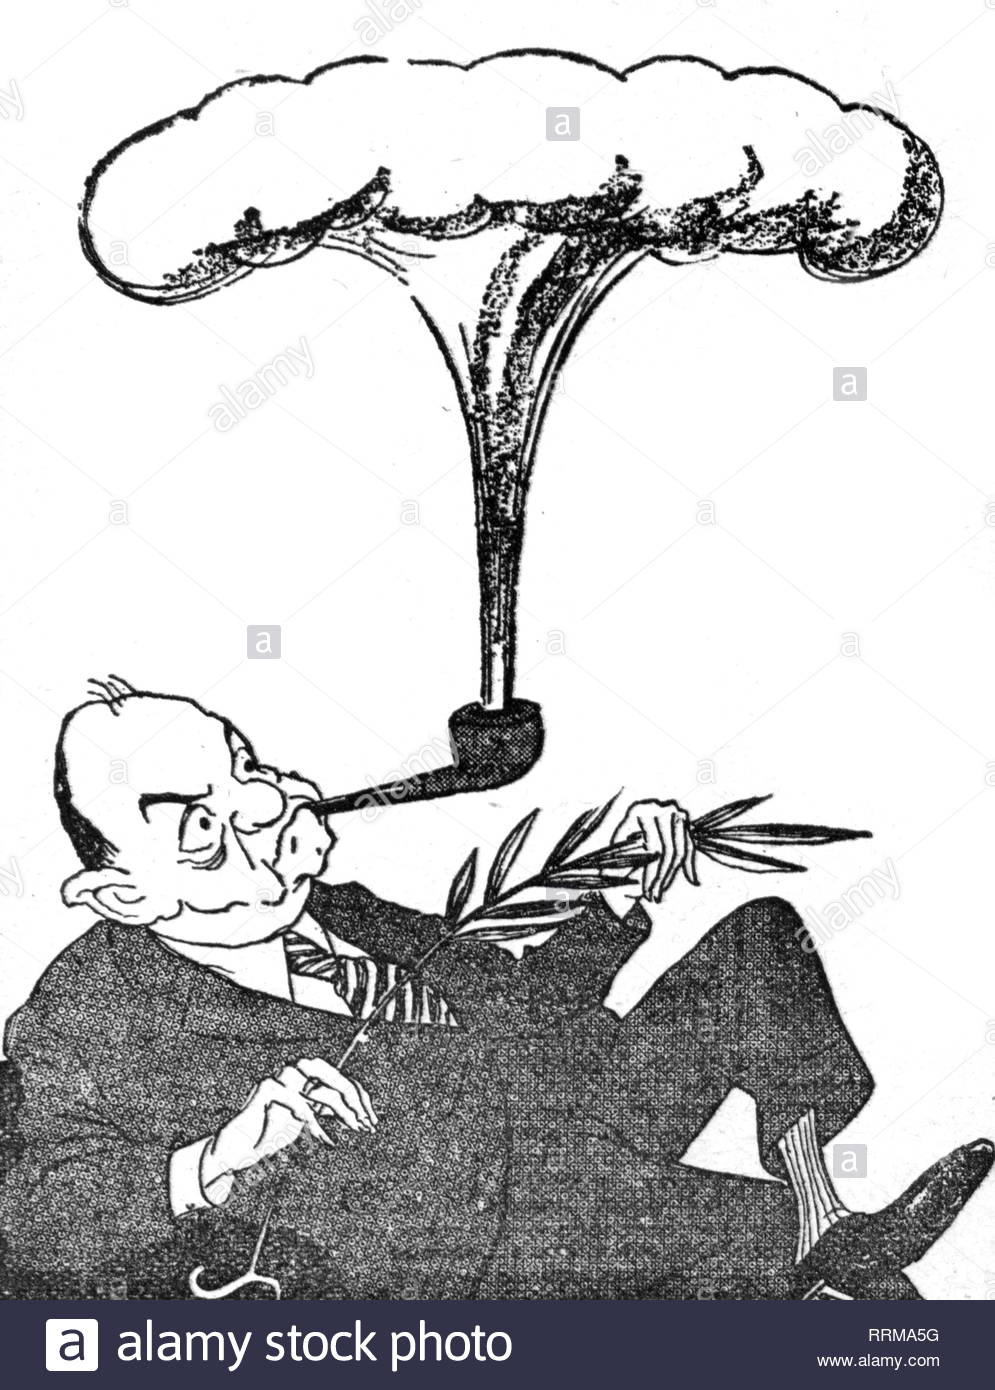 Rusk, Dean, 9.2.1909 - 20.12.1994, American politician (Democrats), Unites States Secretary of State 21. 1. 1961 - 20. 1. 1969, half length, caricature, 'Calumet from Overseas', drawing by Kukryniksy, 'Pravda', 23.6.1962, Artist's Copyright must also be cleared - Stock Image